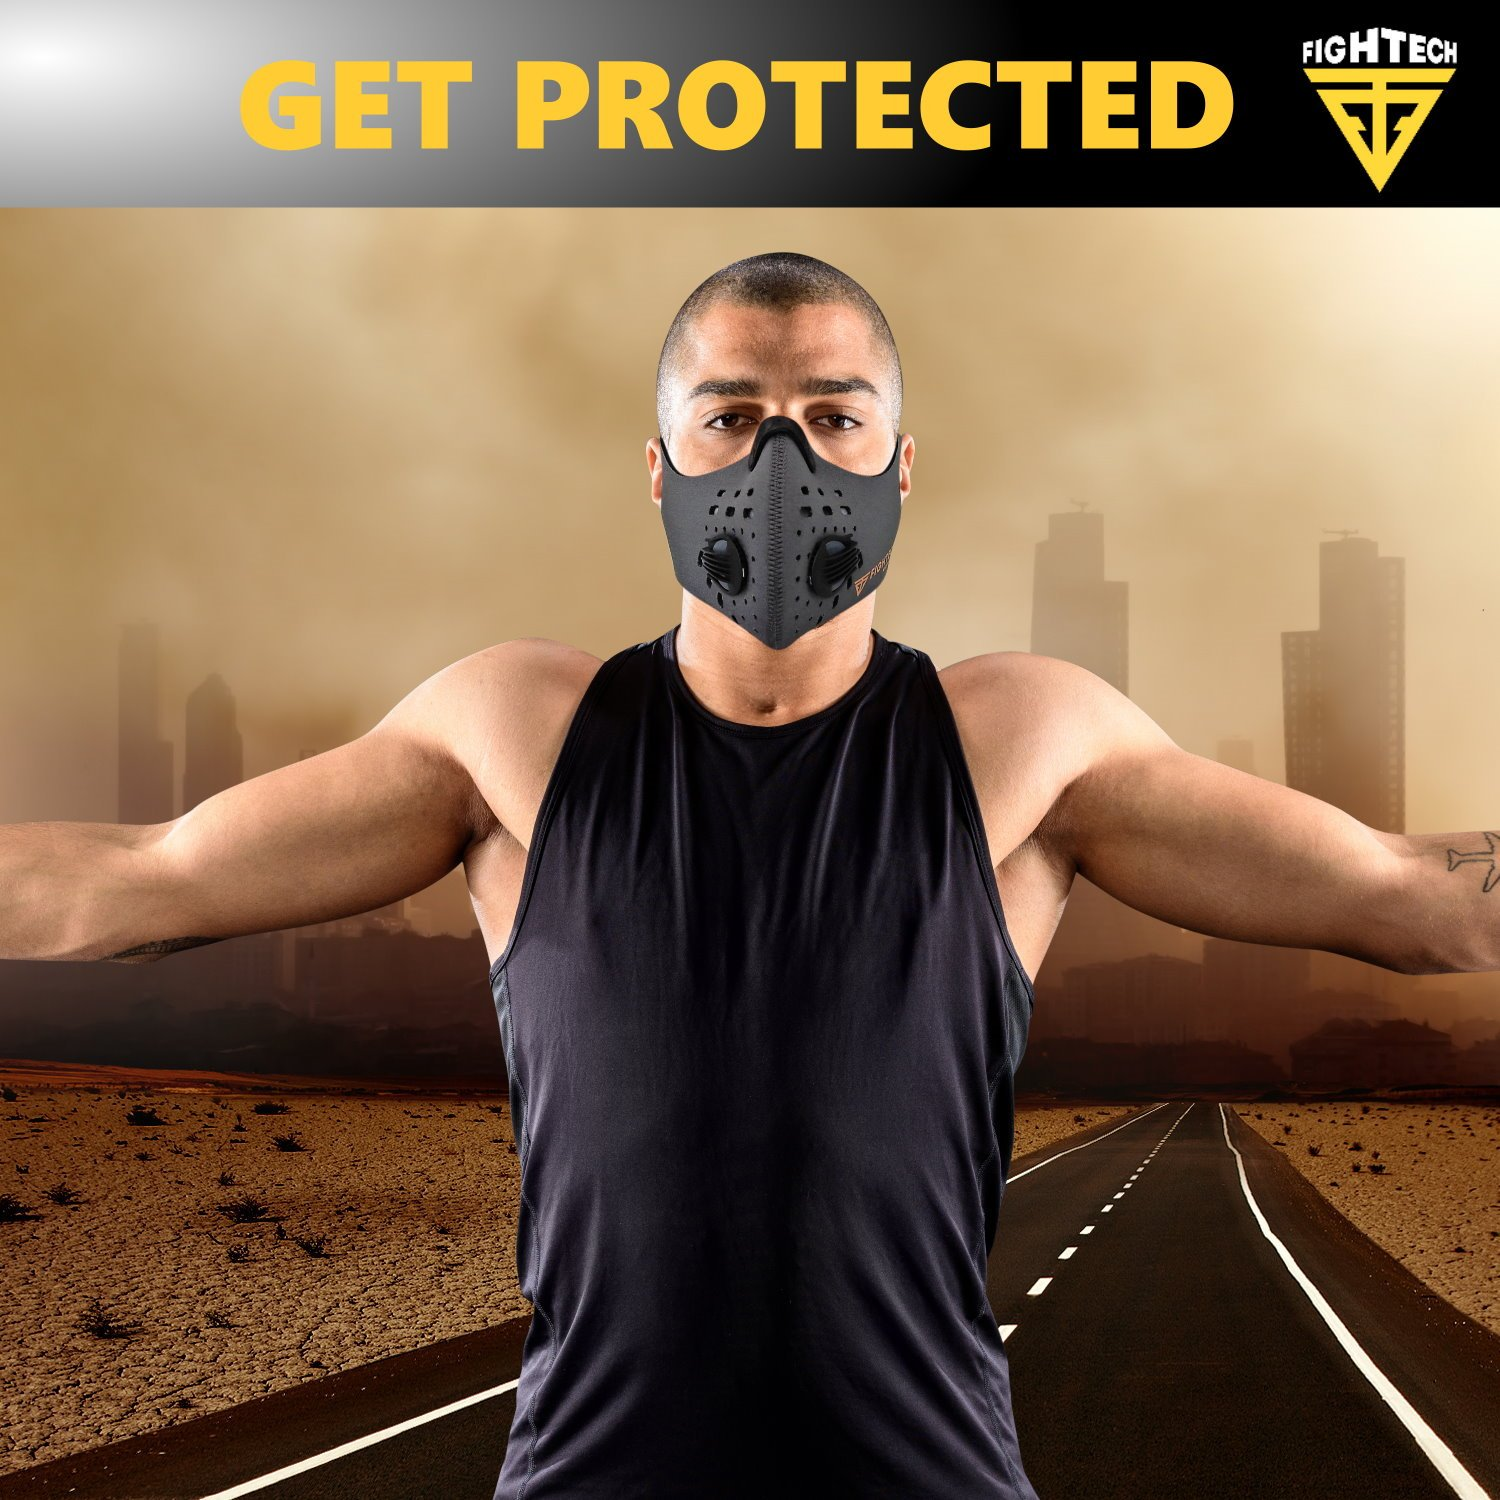 N99 Dust Mask by FIGHTECH with 4 Activated Carbon N99 Filters & 2 Air Valves. Dustproof Respirator Face Mask Protects from Dust, Allergy and Pollution. Good for Woodwork and Outdoor Activities (GRY) by FIGHTECH (Image #6)